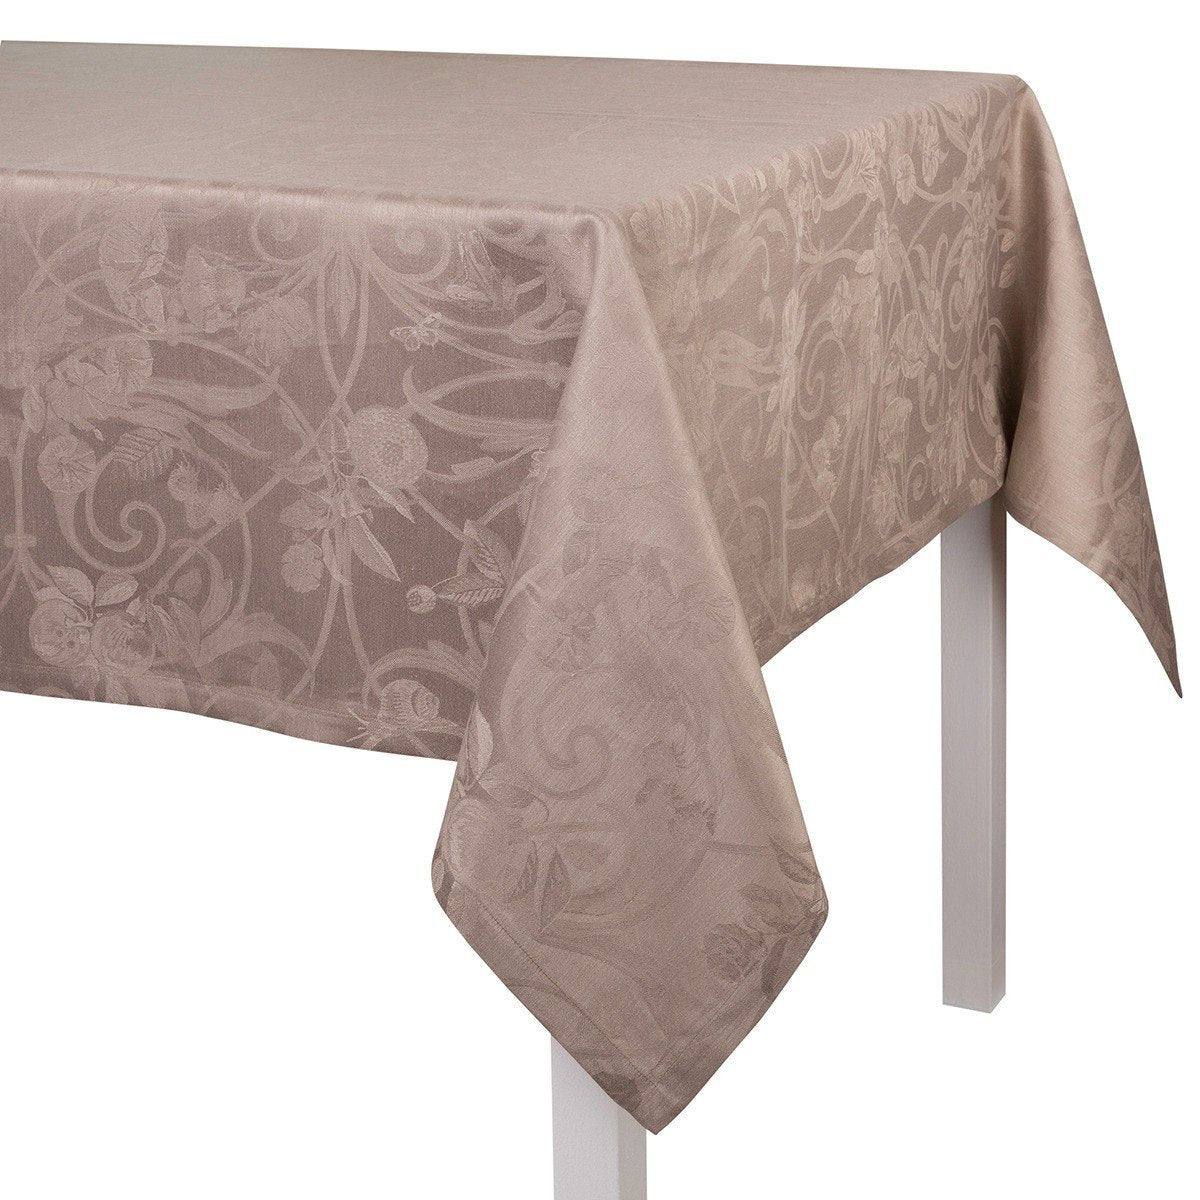 Le Jacquard Français Table Linen Tivoli Black Pepper Fig Linens Tablecloth